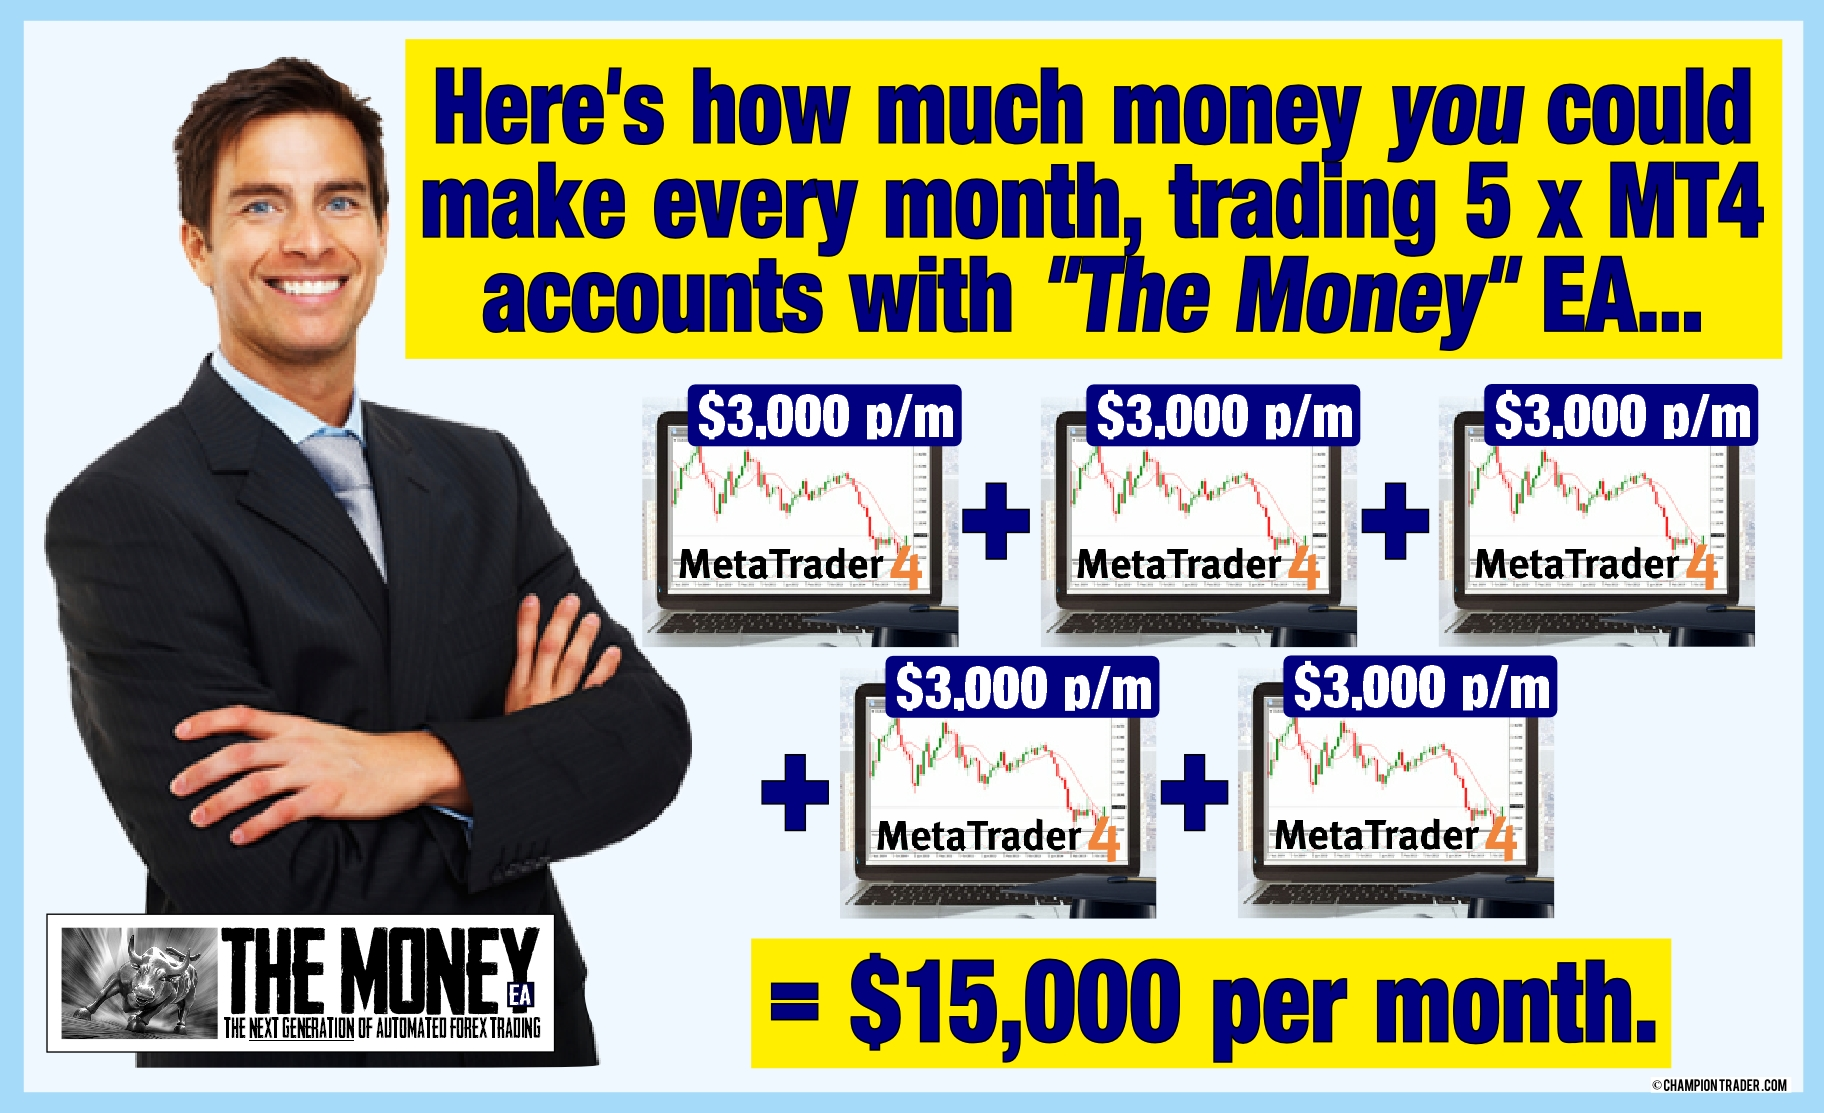 trading 5 MT4 accounts with The Money EA forex expert advisor logo start making money today! there's infinite money to be had